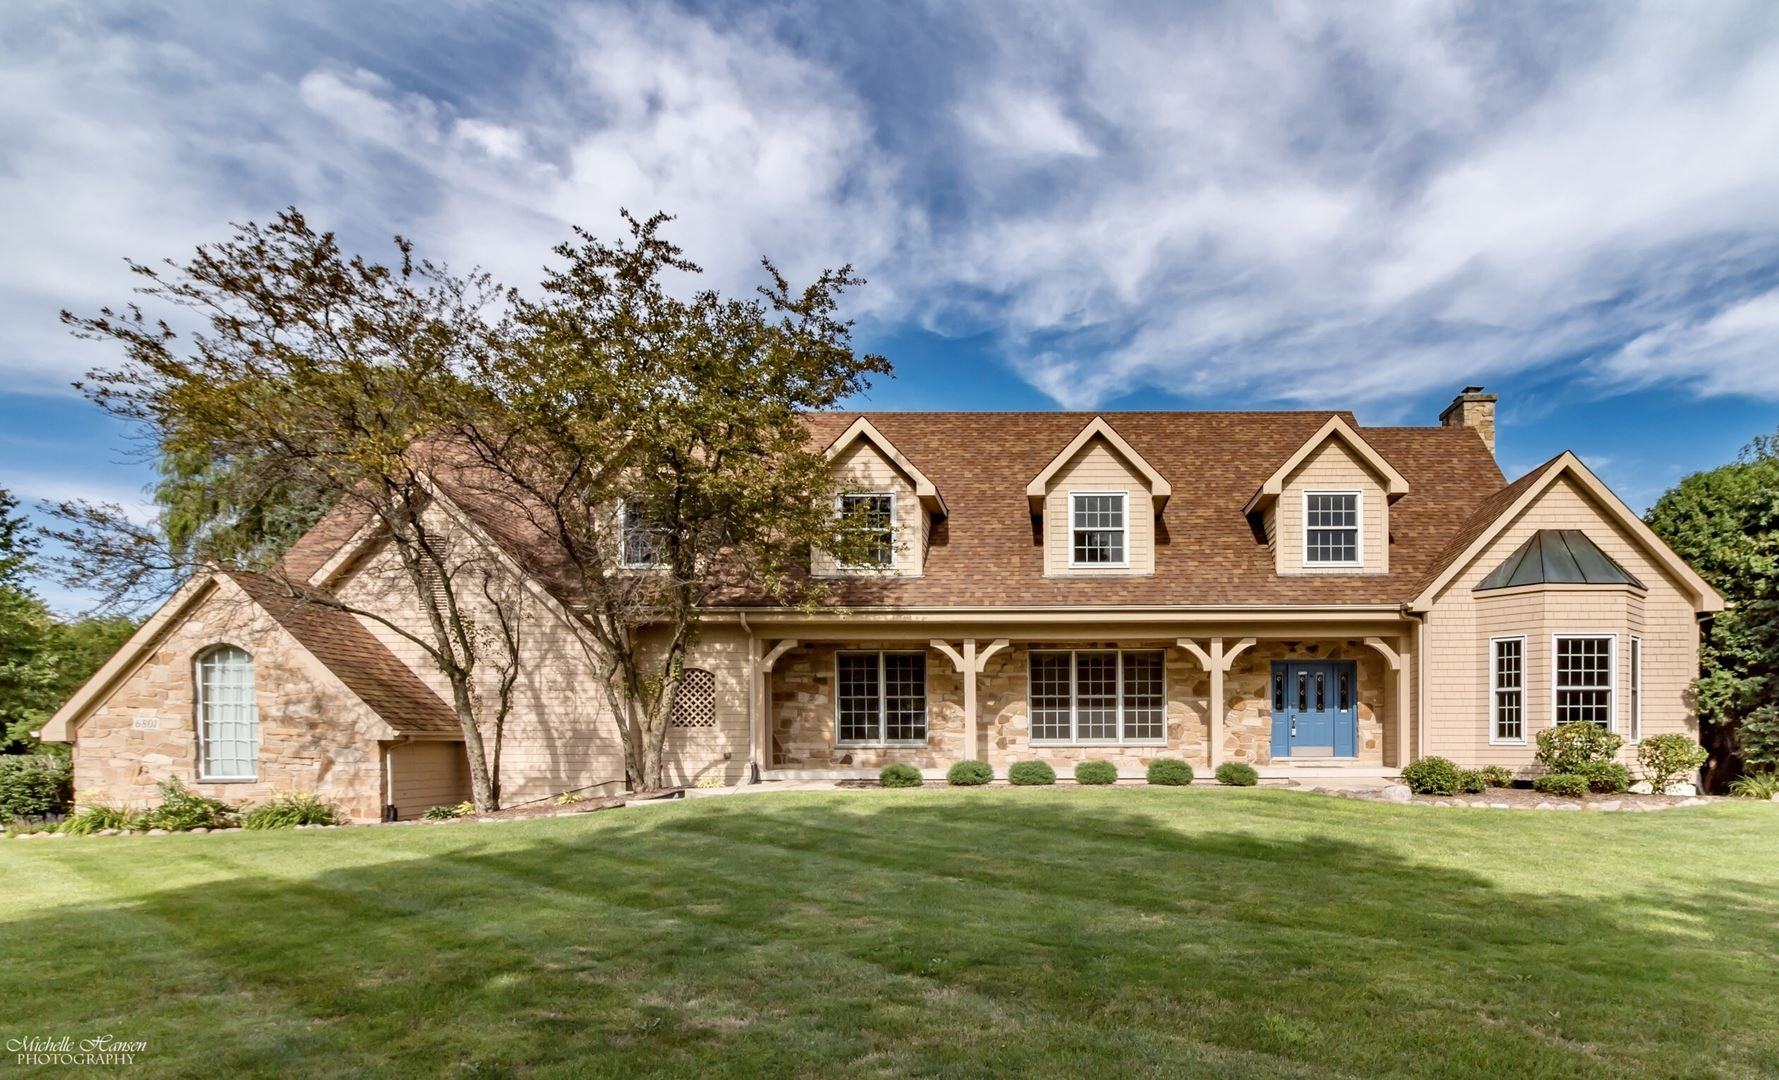 Photo for 6801 Colonel Holcomb Drive, Crystal Lake, IL 60012 (MLS # 10859954)